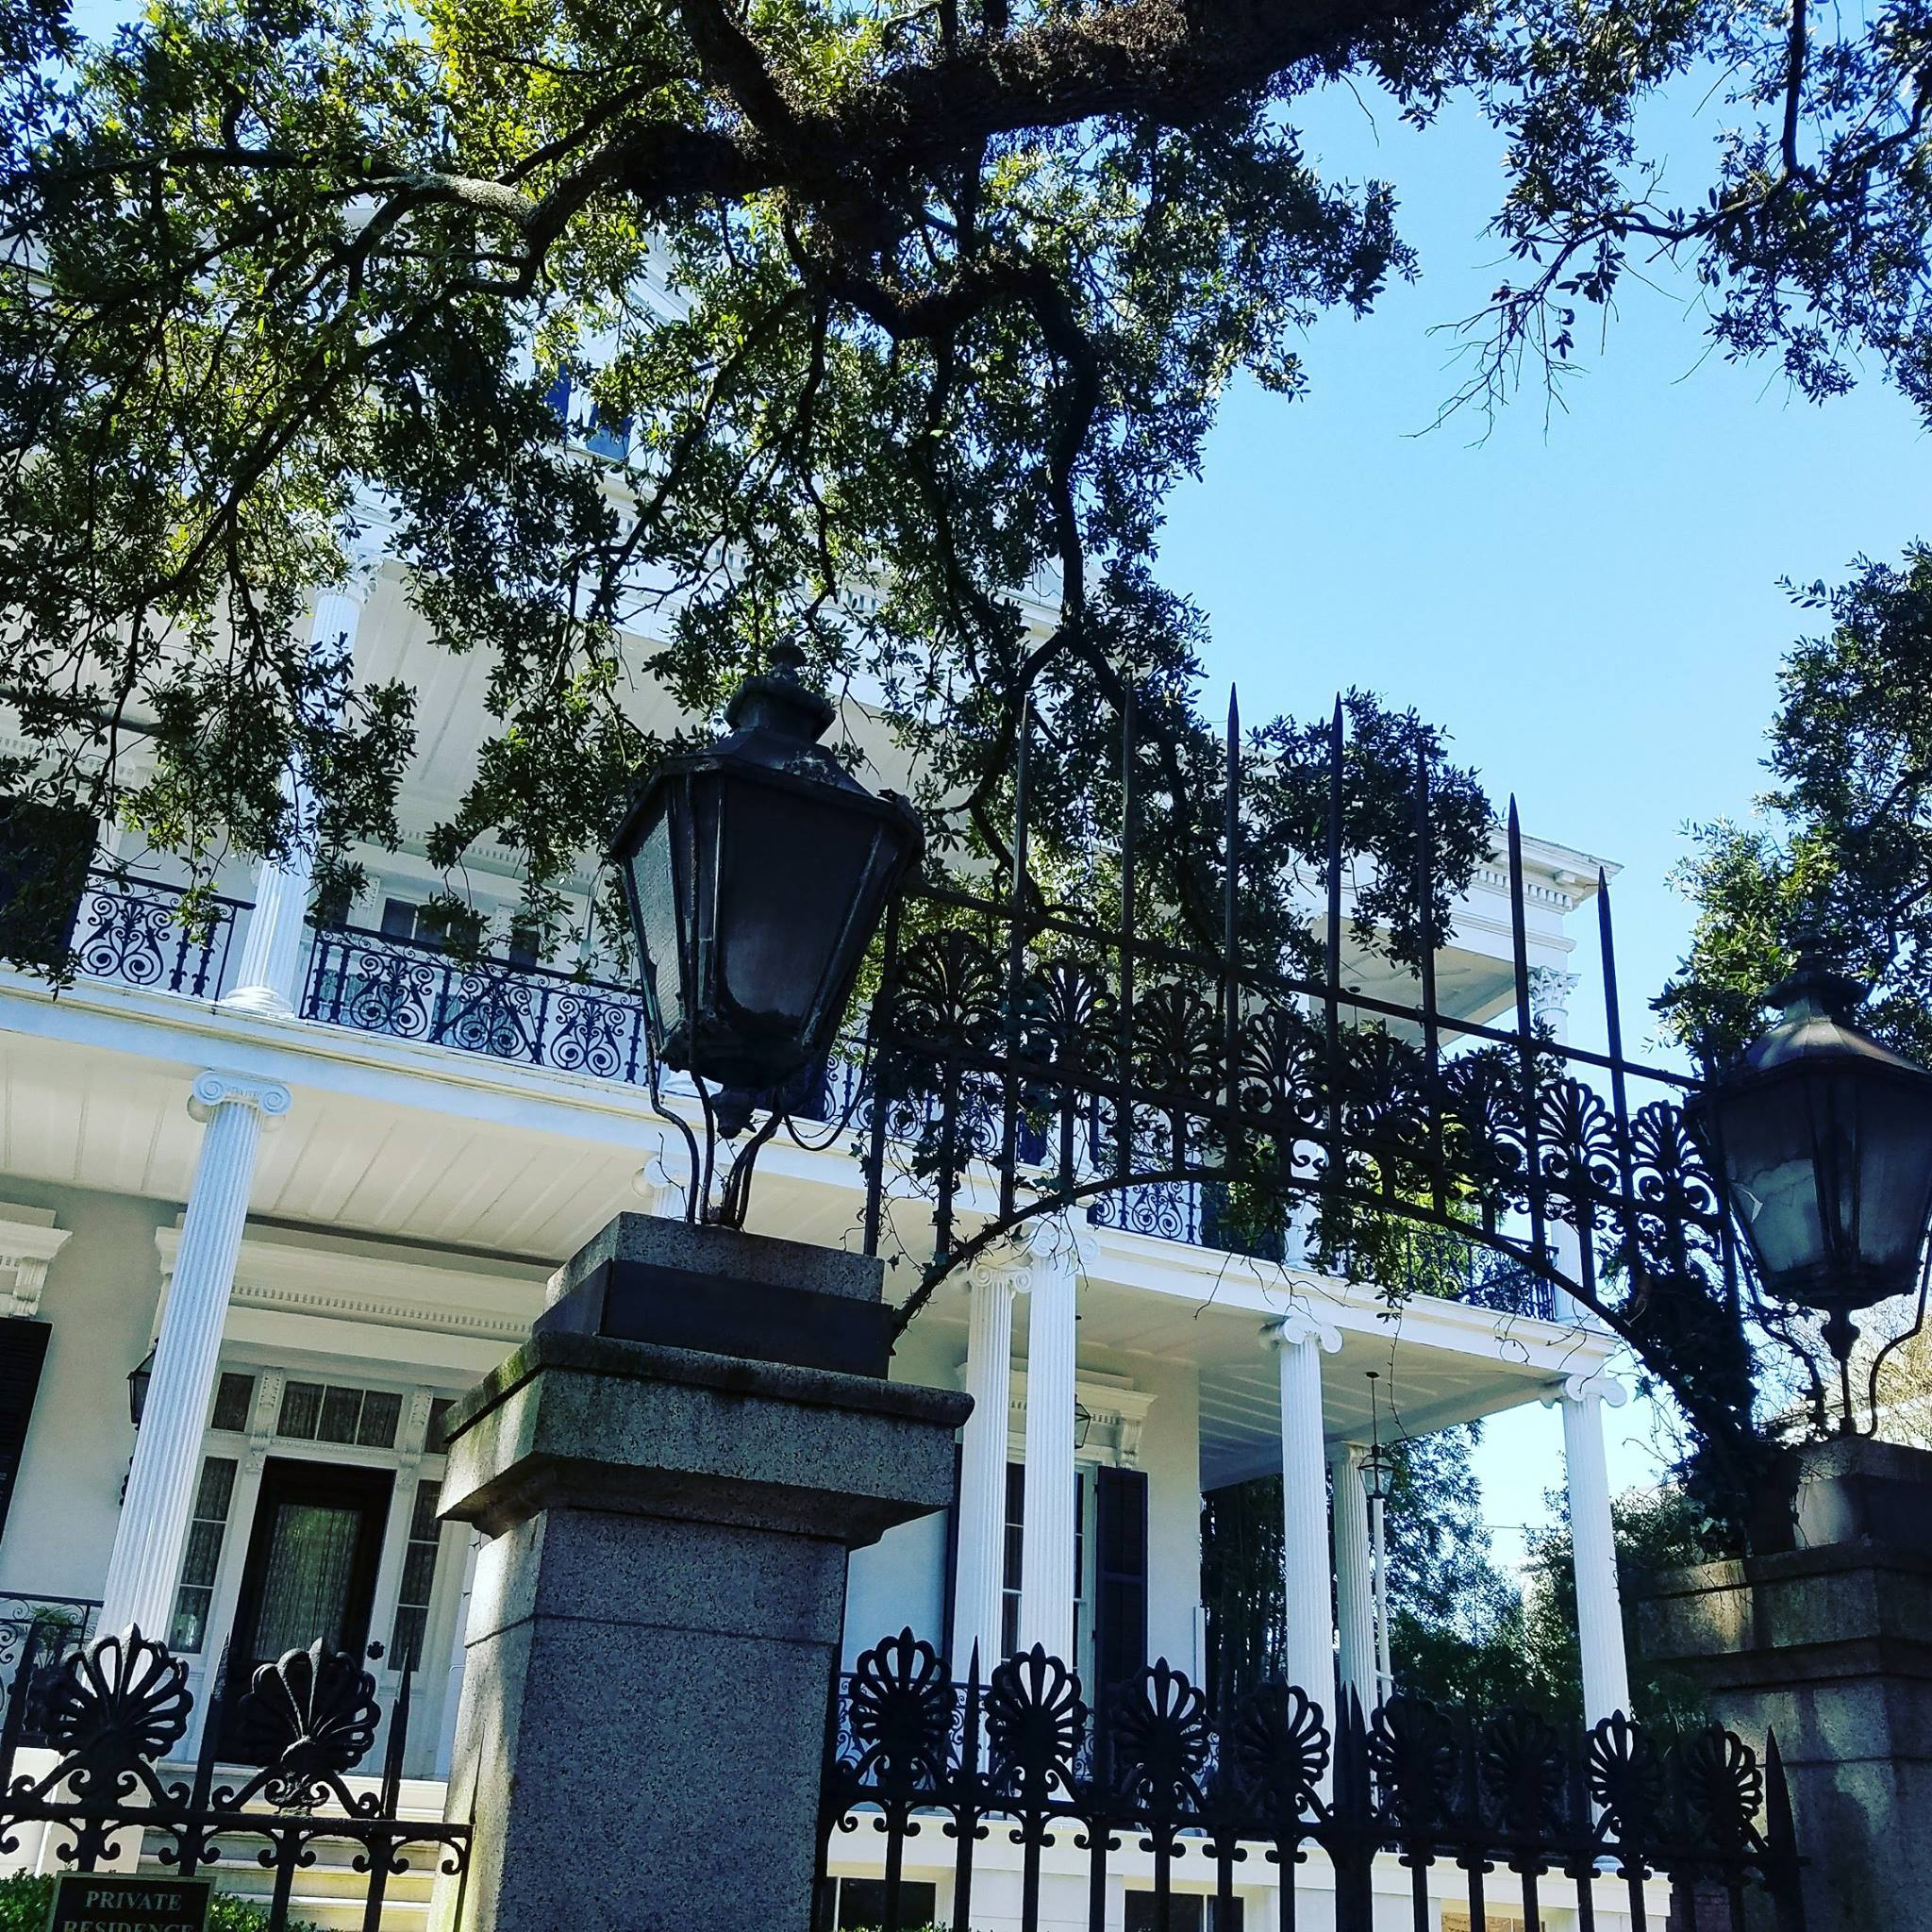 Miss Robicheaux's Academy where they filmed American Horror Story: Coven!